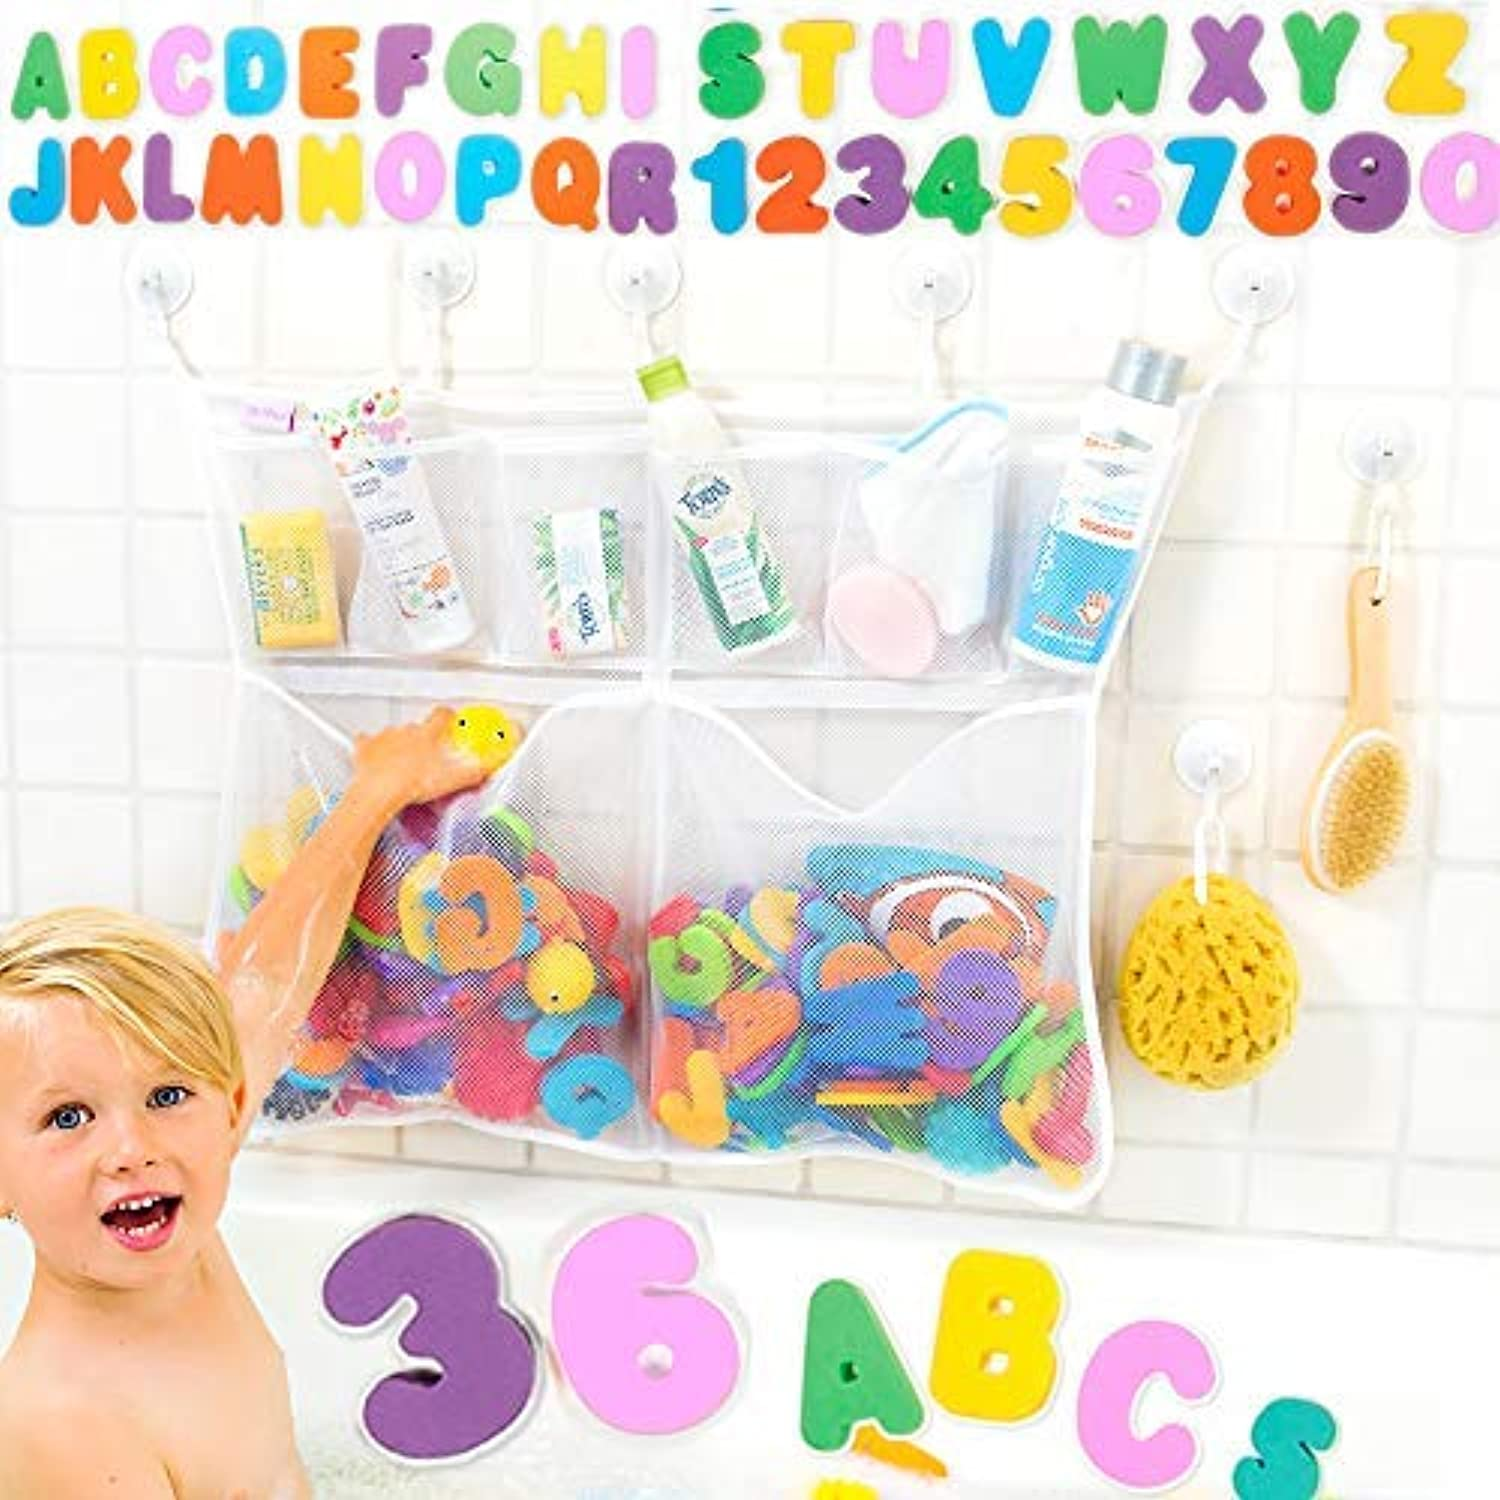 The Really Big Tub Cubby Baby Bath Toy Organizer + 36 Foam Letters & Numbers + Large Quick Dry Bathtub Storage Net + 6x Lock Tight Suction Hooks & 3M Stickers - Sure Not To Fall.